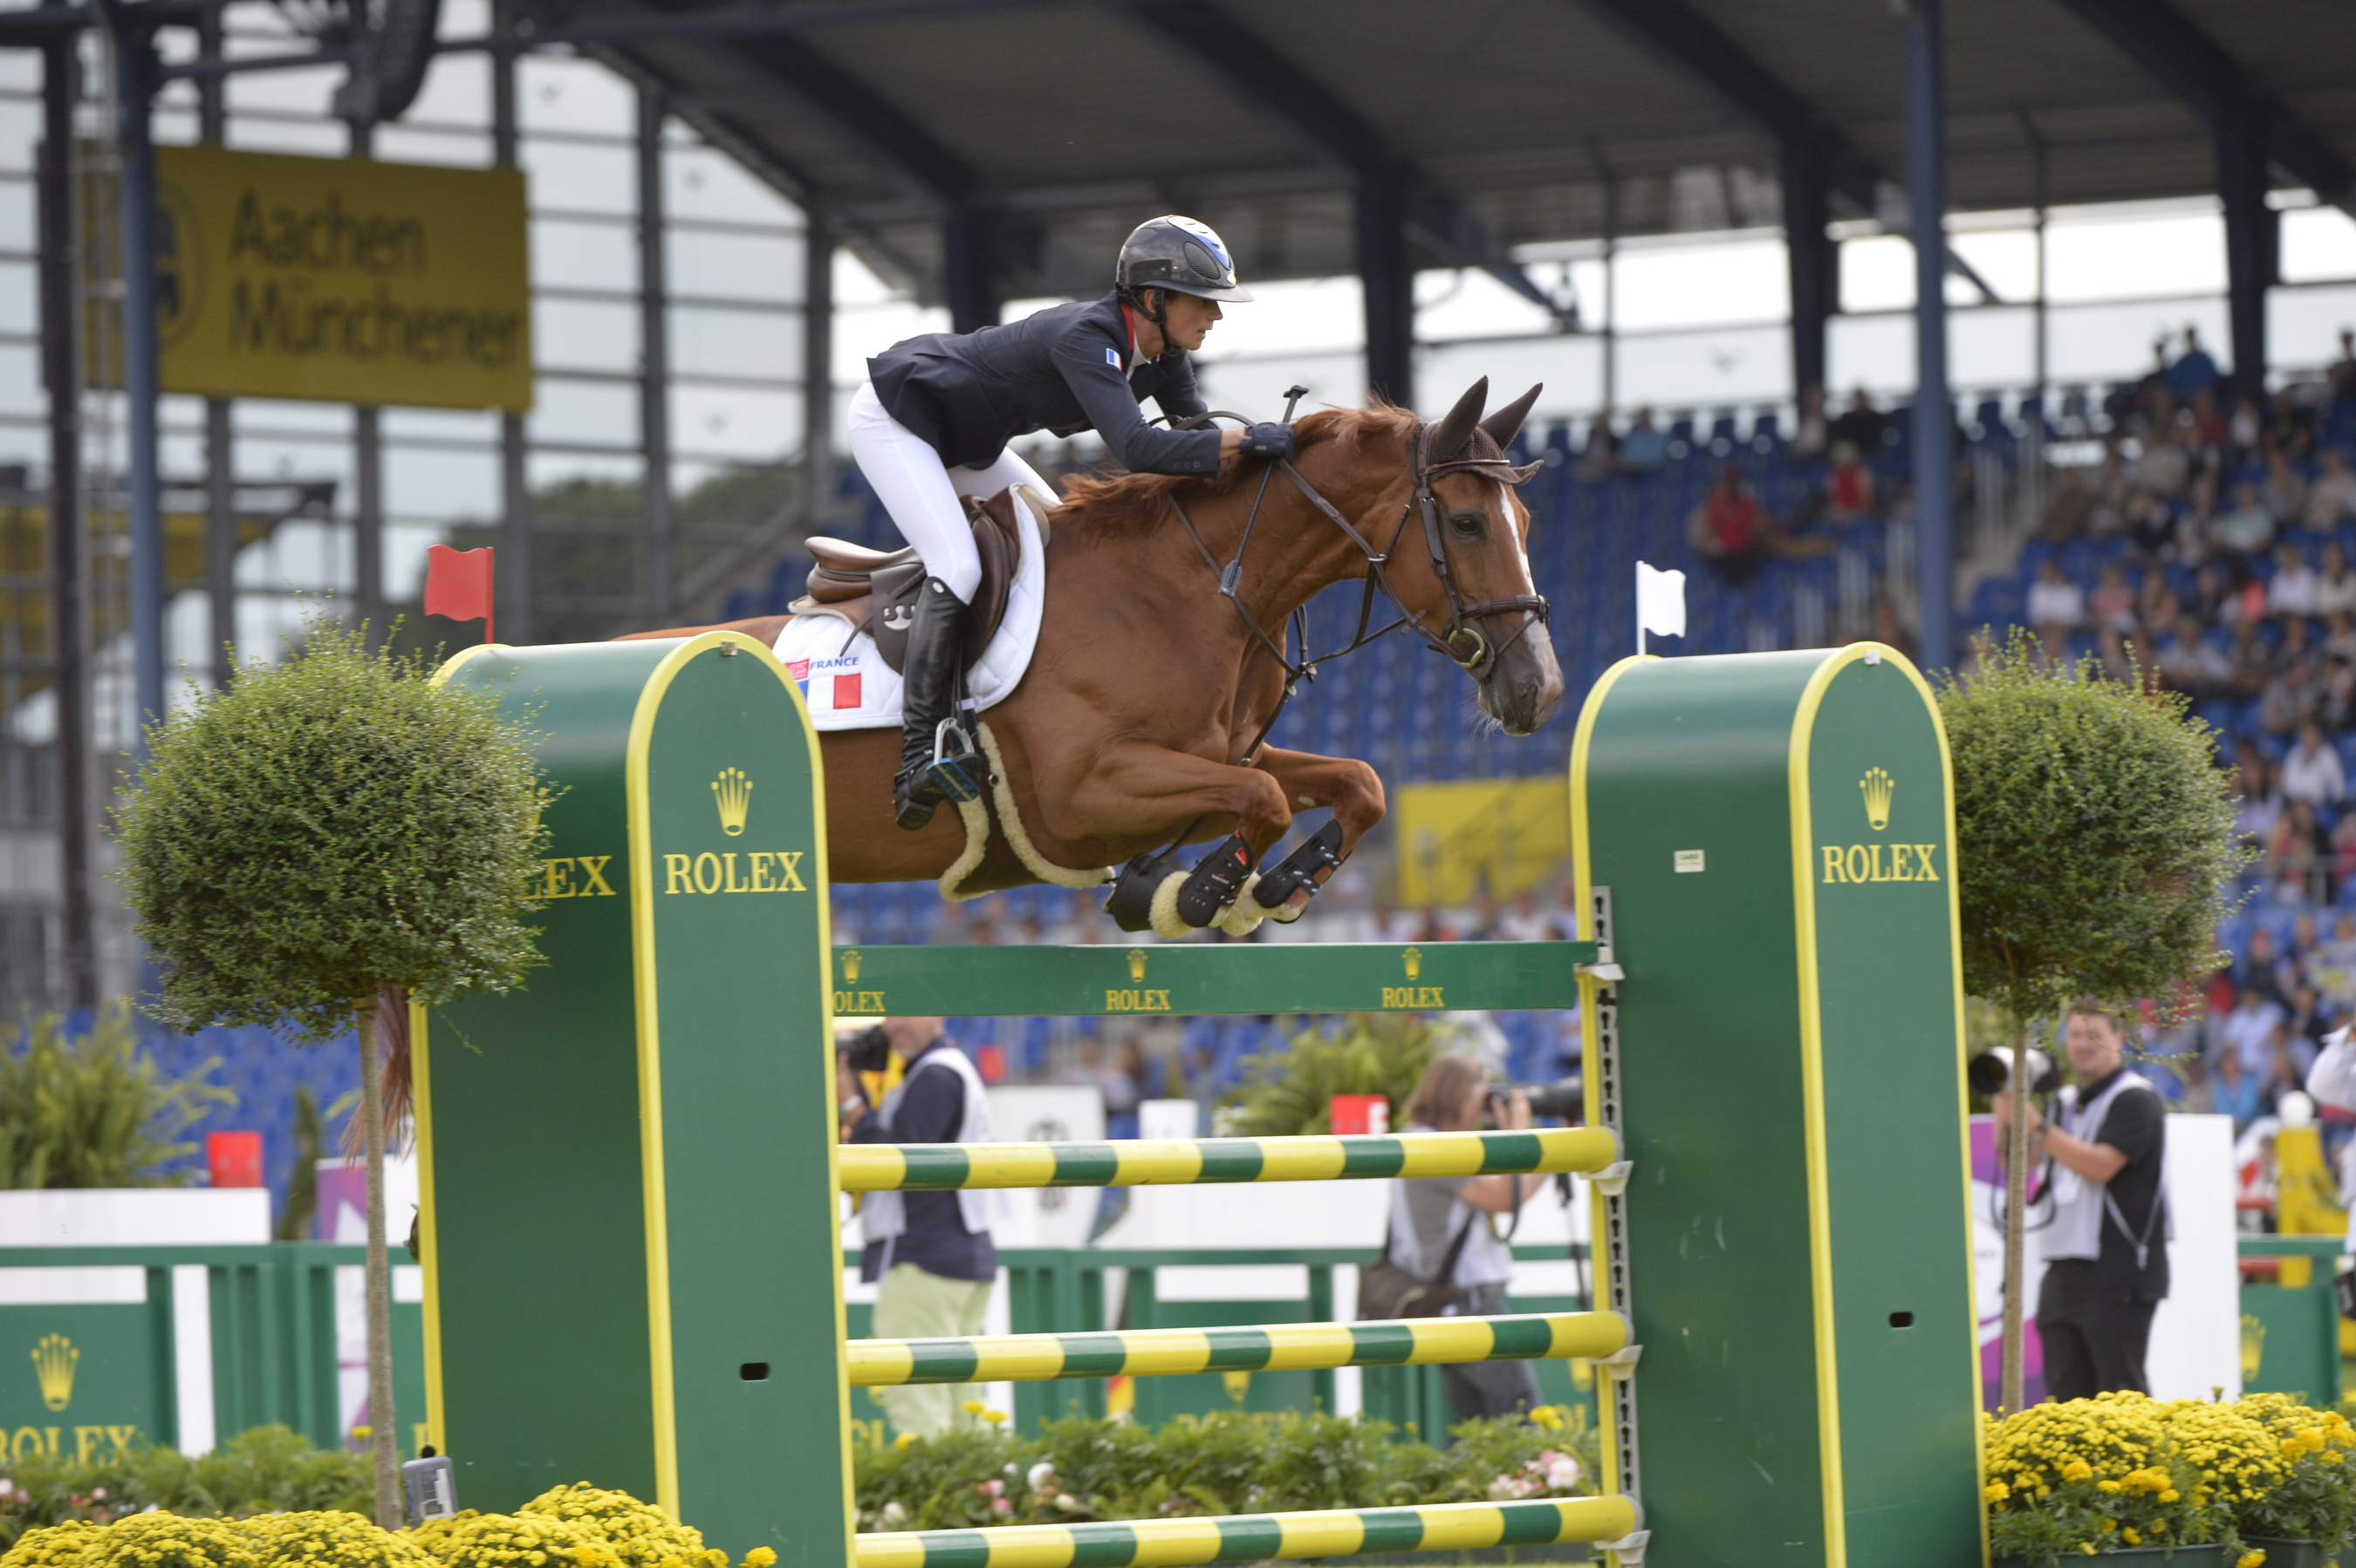 Horse Times Egypt: Equestrian Magazine :News :PENELOPE LEPREVOST (FRA) TAKES AN EARLY LEAD IN THE INDIVIDUAL COMPETITION AT THE FEI EUROPEAN CHAMPIONSHIPS, GERMANY LEADS THE TEAM COMPETITION